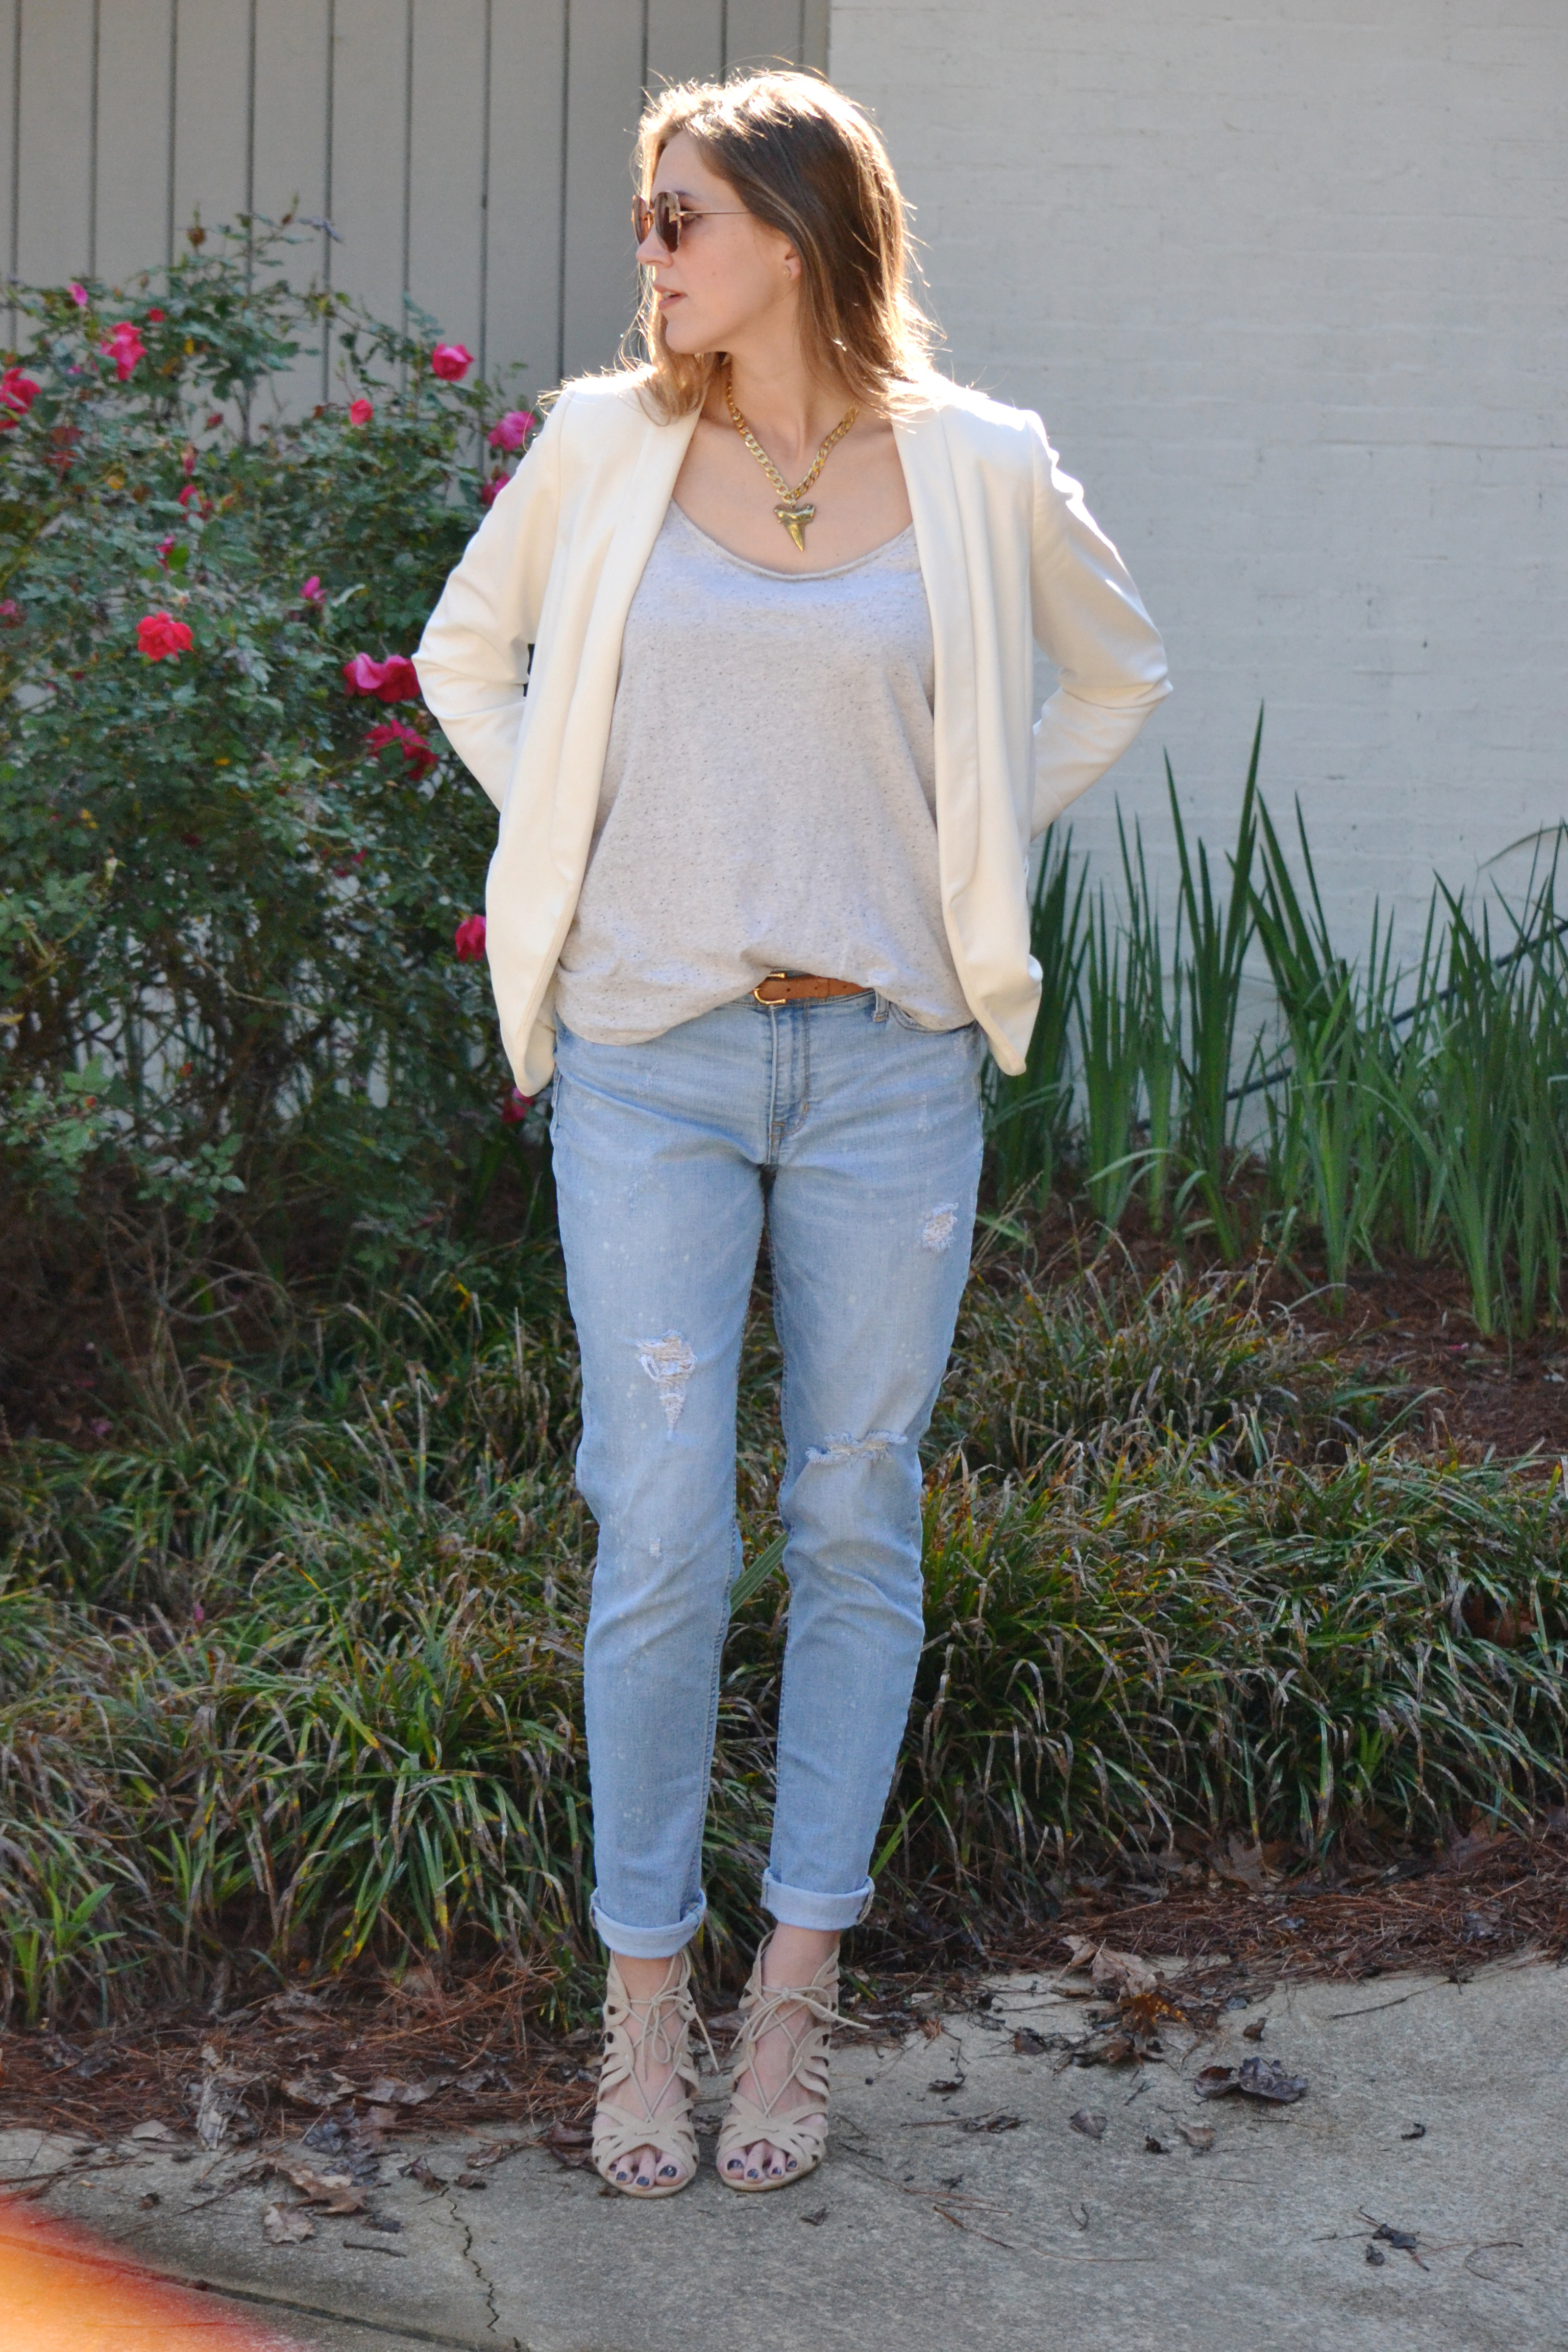 Styling Mom Jeans via thehiveblog.com